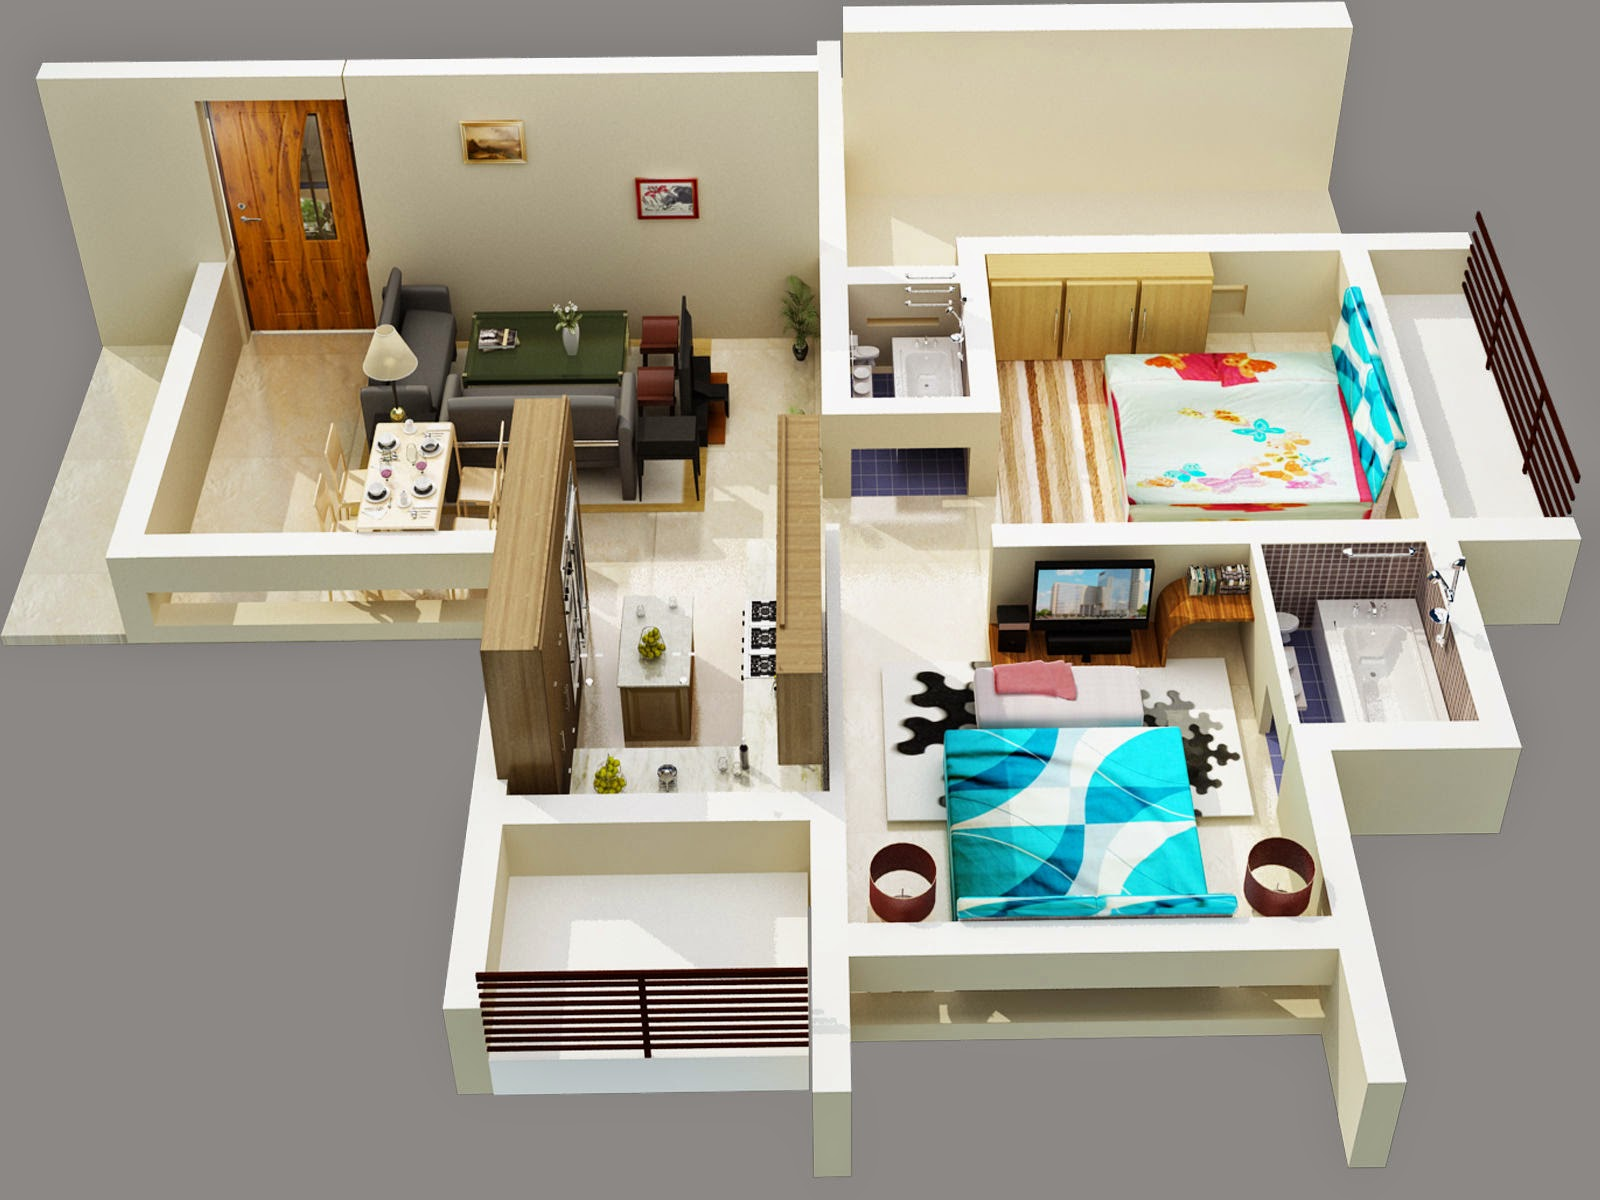 Foundation dezin decor 3d floor layout with for Bedroom layout maker